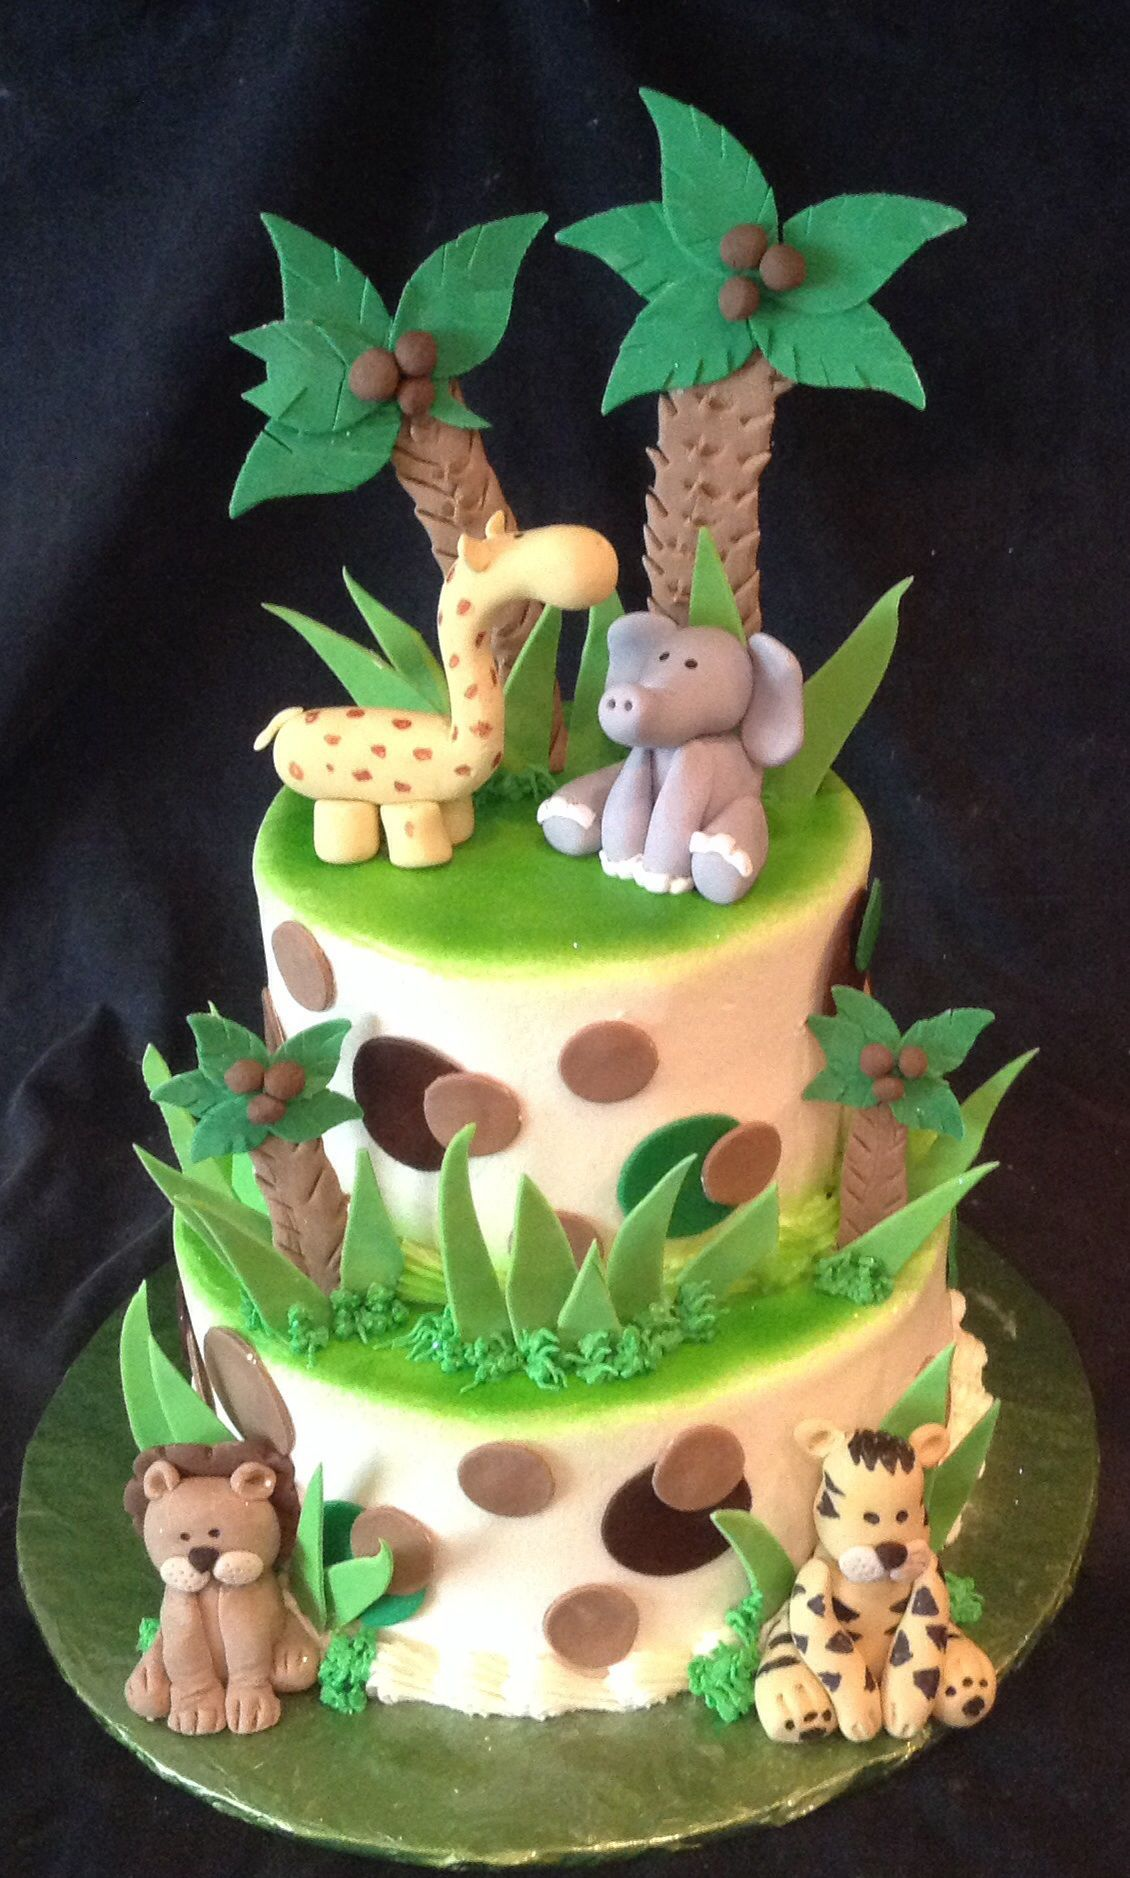 jungle theme baby shower cake my custom cake designs dawnbakescakes